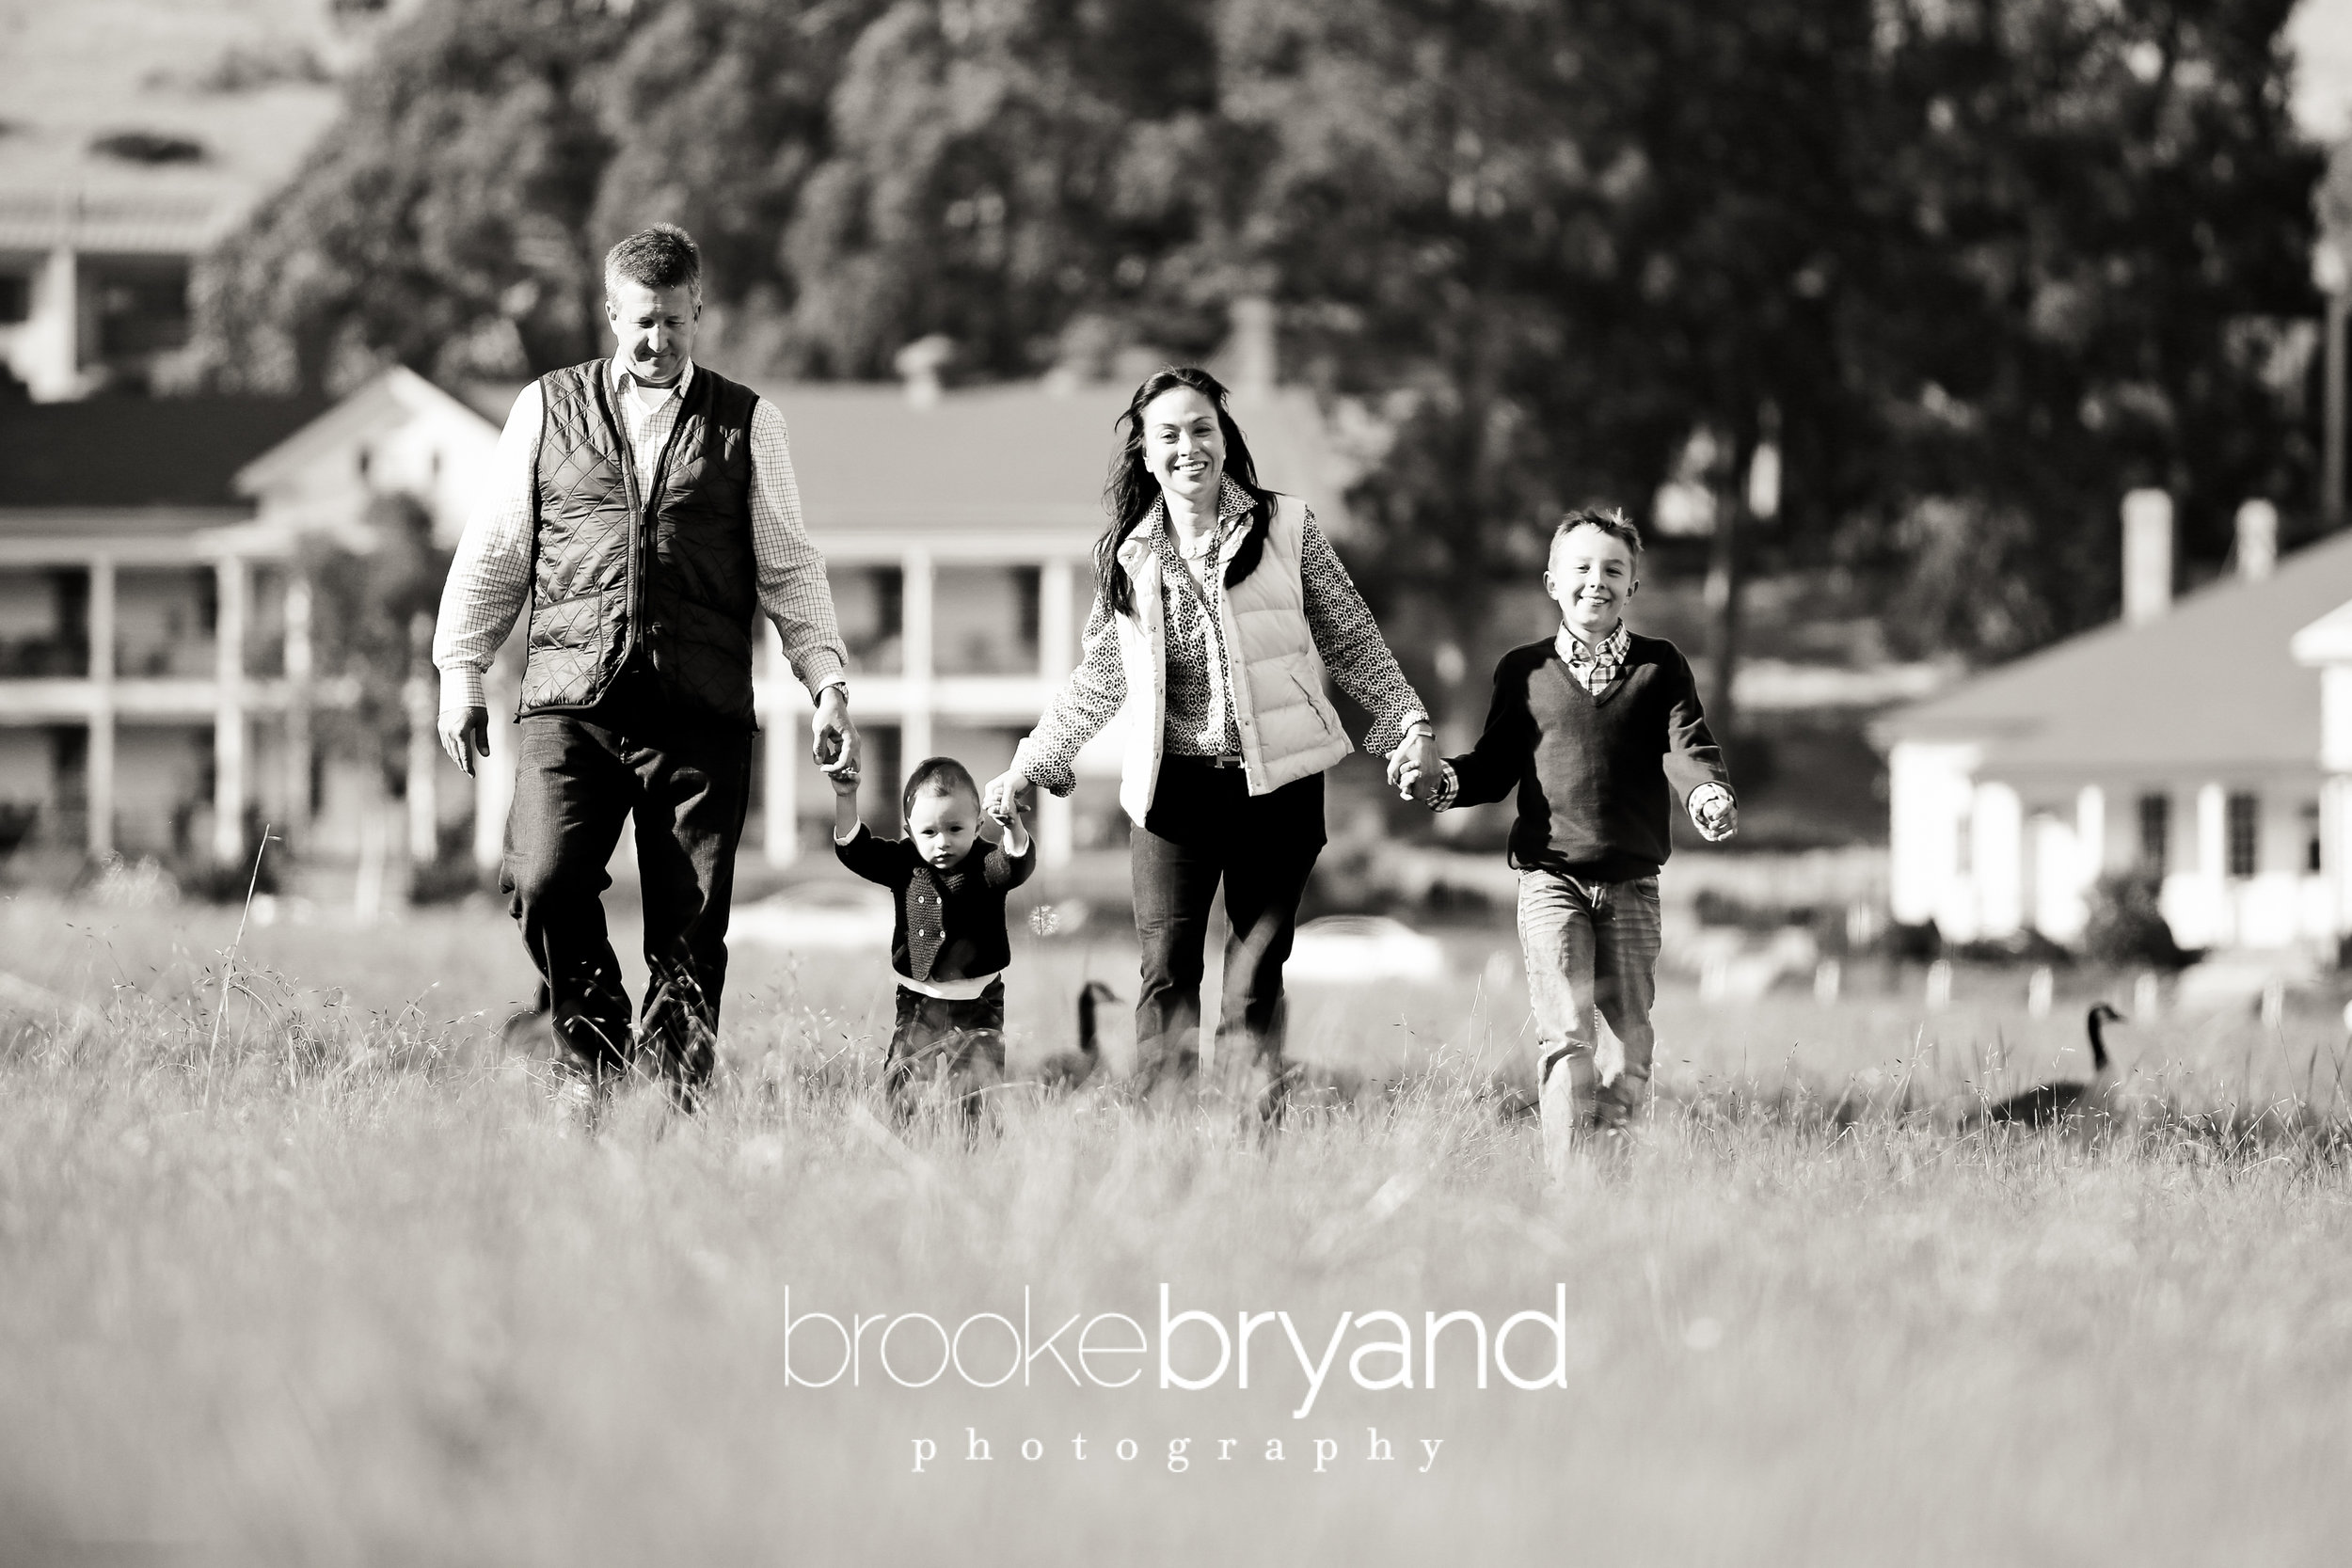 Brooke-Bryand-Photography-Cavallo-Point-Sausalito-Family-Photographer-IMG_3469.jpg